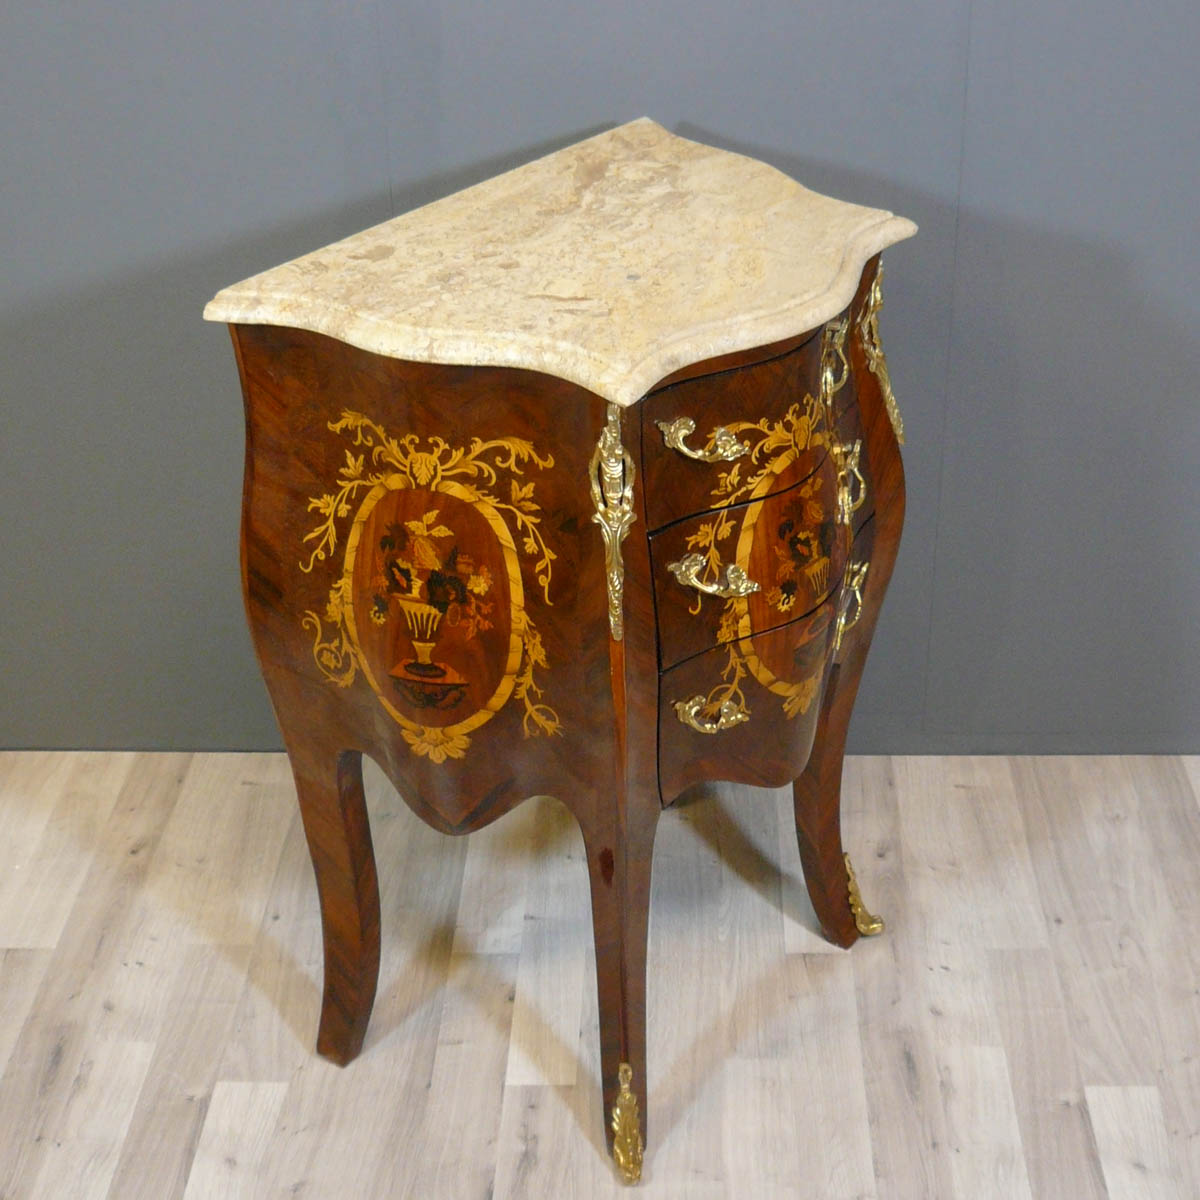 Louis xv commode art deco tiffany lamps bronze - Commode baroque pas chere ...